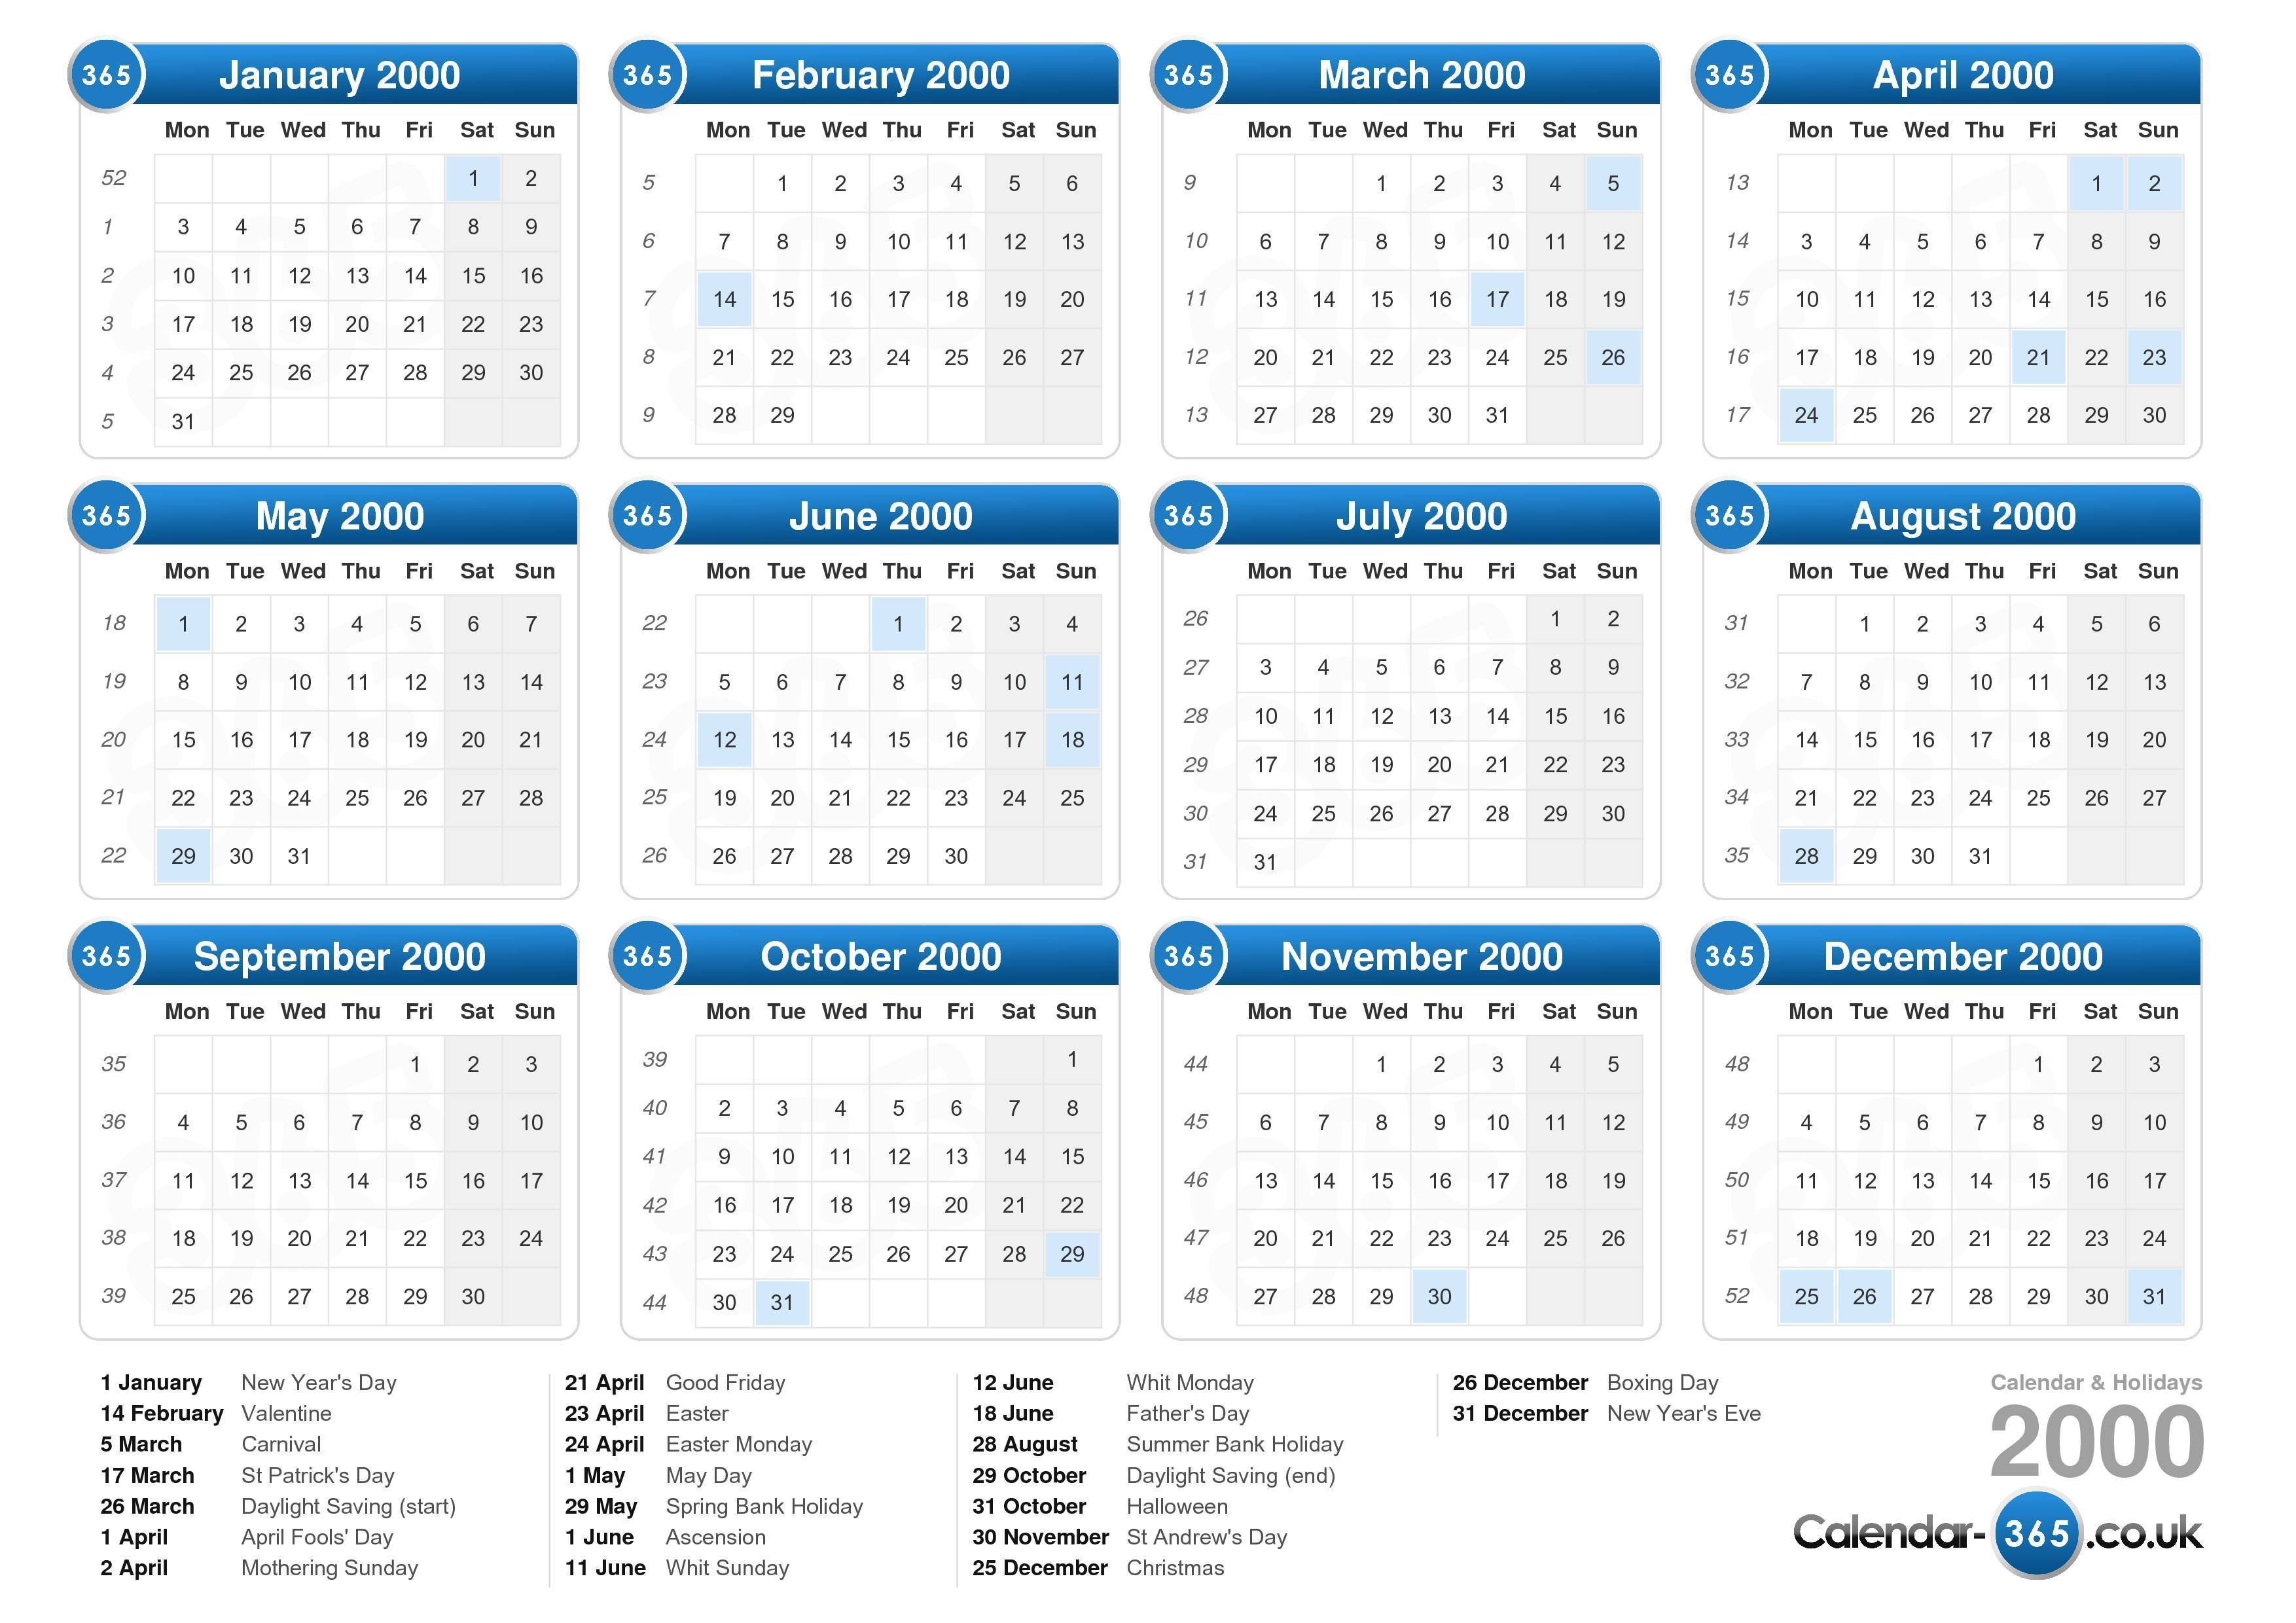 calendar 2000 with holidays landscape format 1 page calendar 2000 233 ...